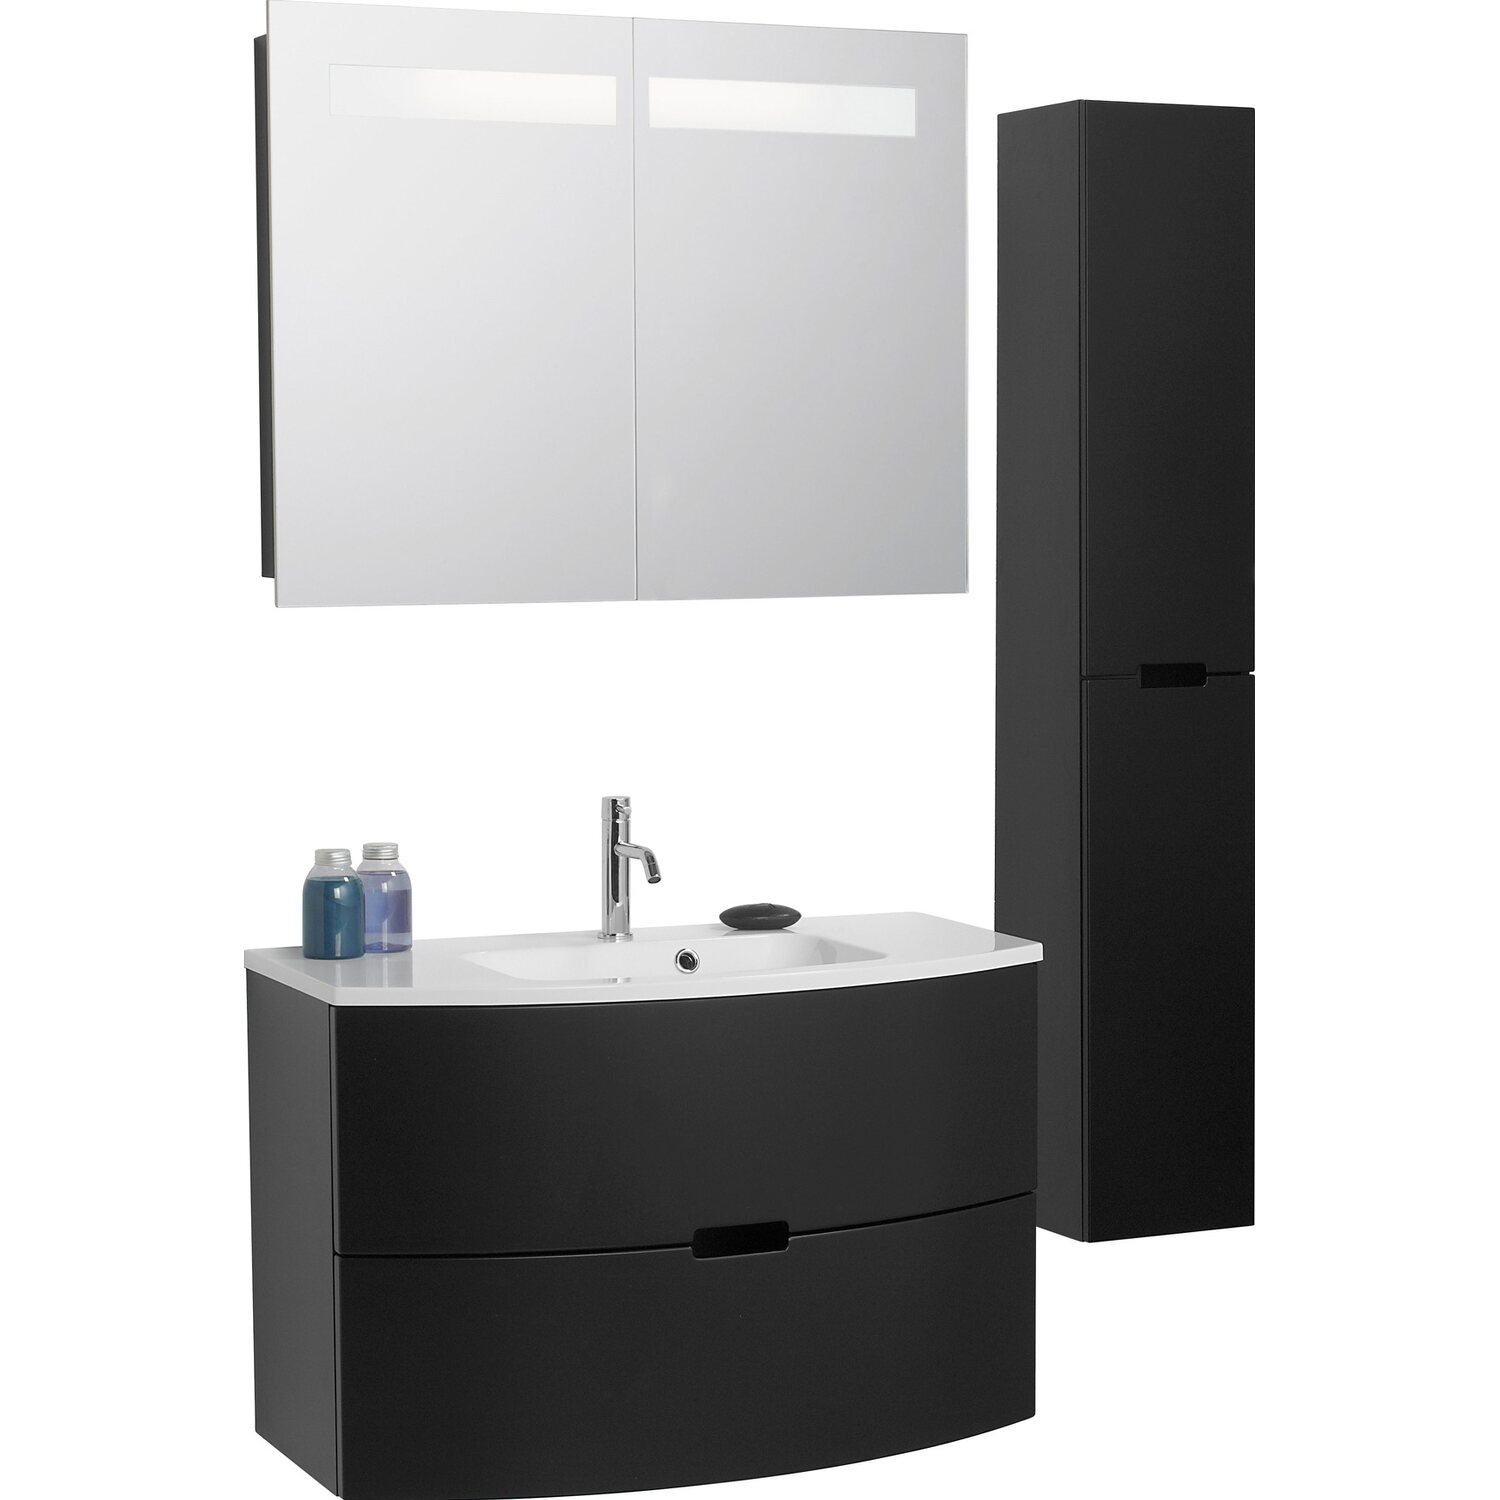 scanbad badm bel set 90 cm mit spiegelschrank modern schwarz matt 3 teilig kaufen bei obi. Black Bedroom Furniture Sets. Home Design Ideas